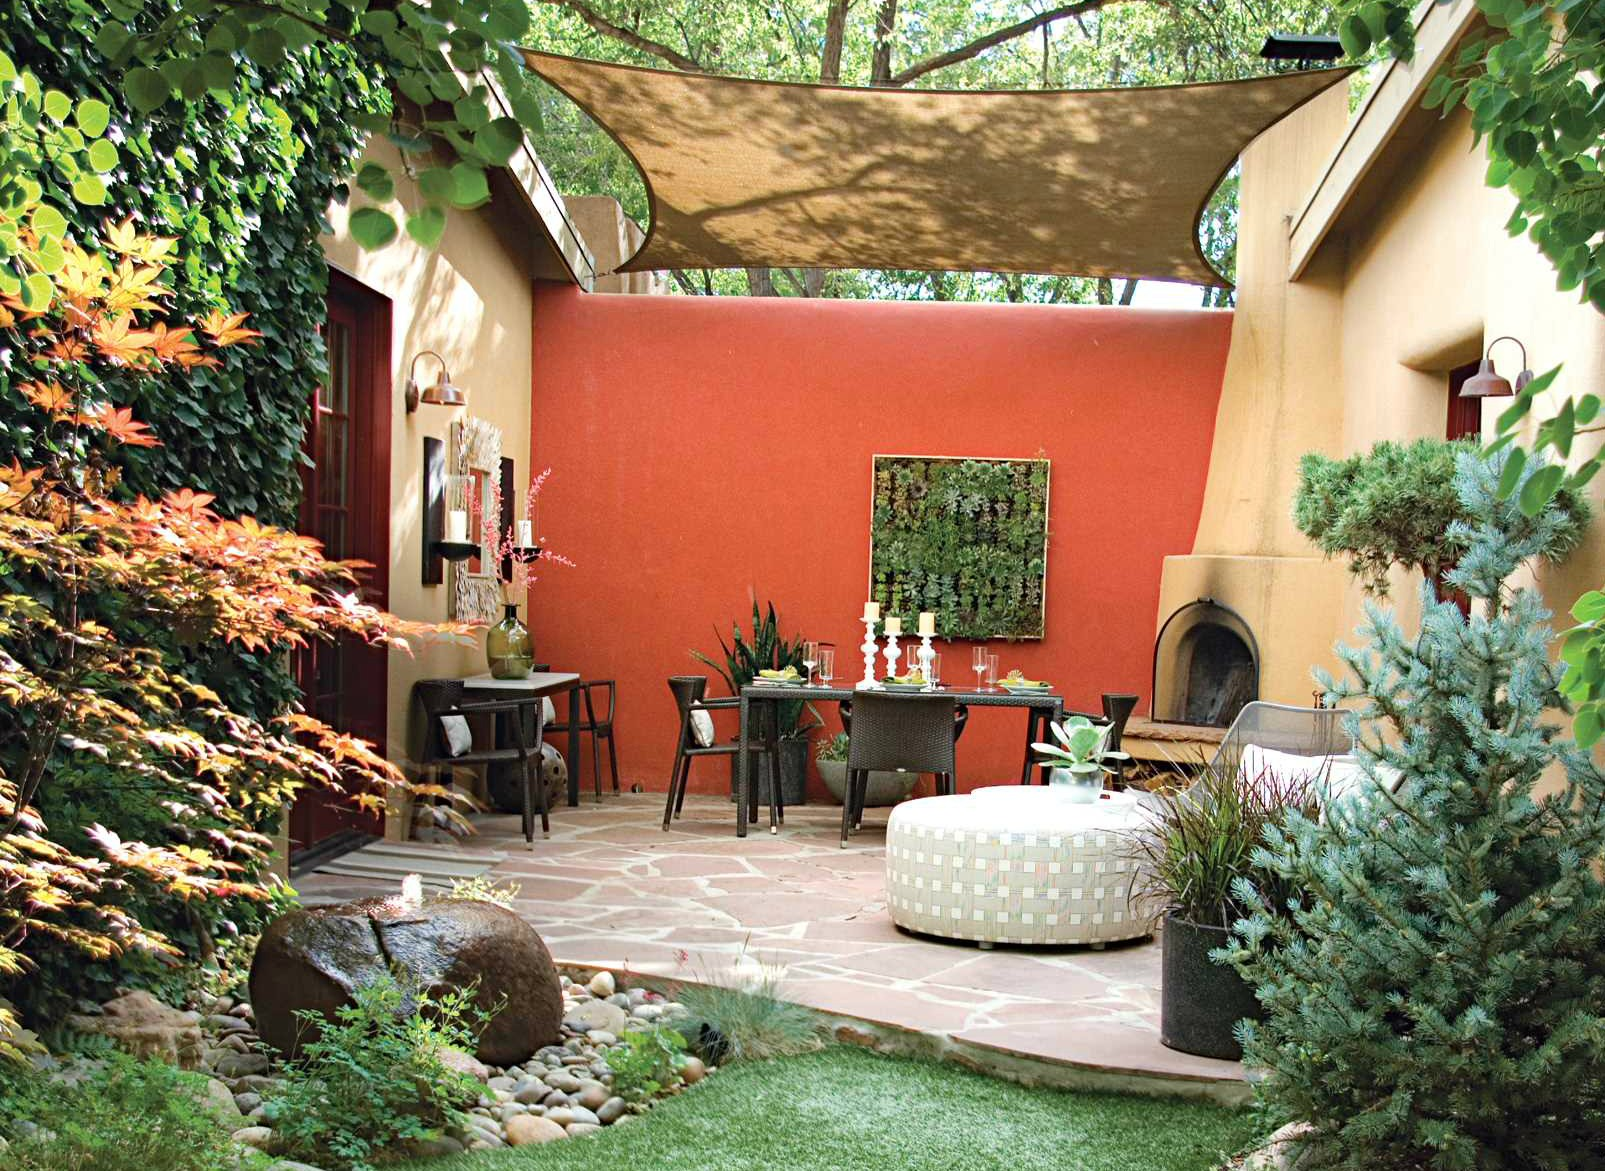 How to make an outdoor canopy decorated by garden border design ideas in addition by outdoor round chaise lounge